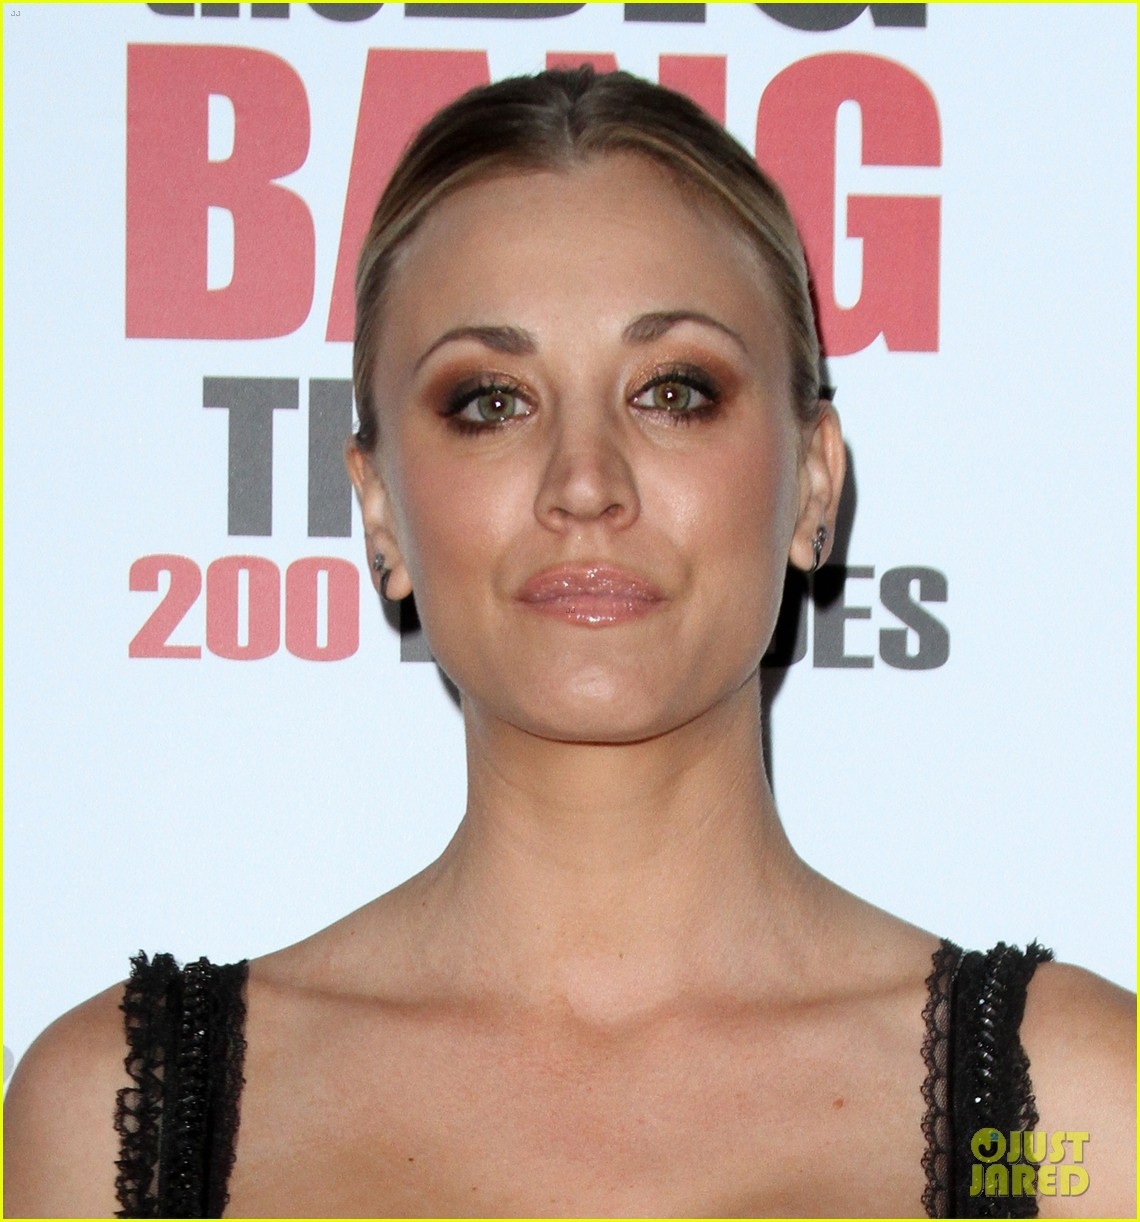 kaley cuoco big bang theory 200 episodes celebration 083584681